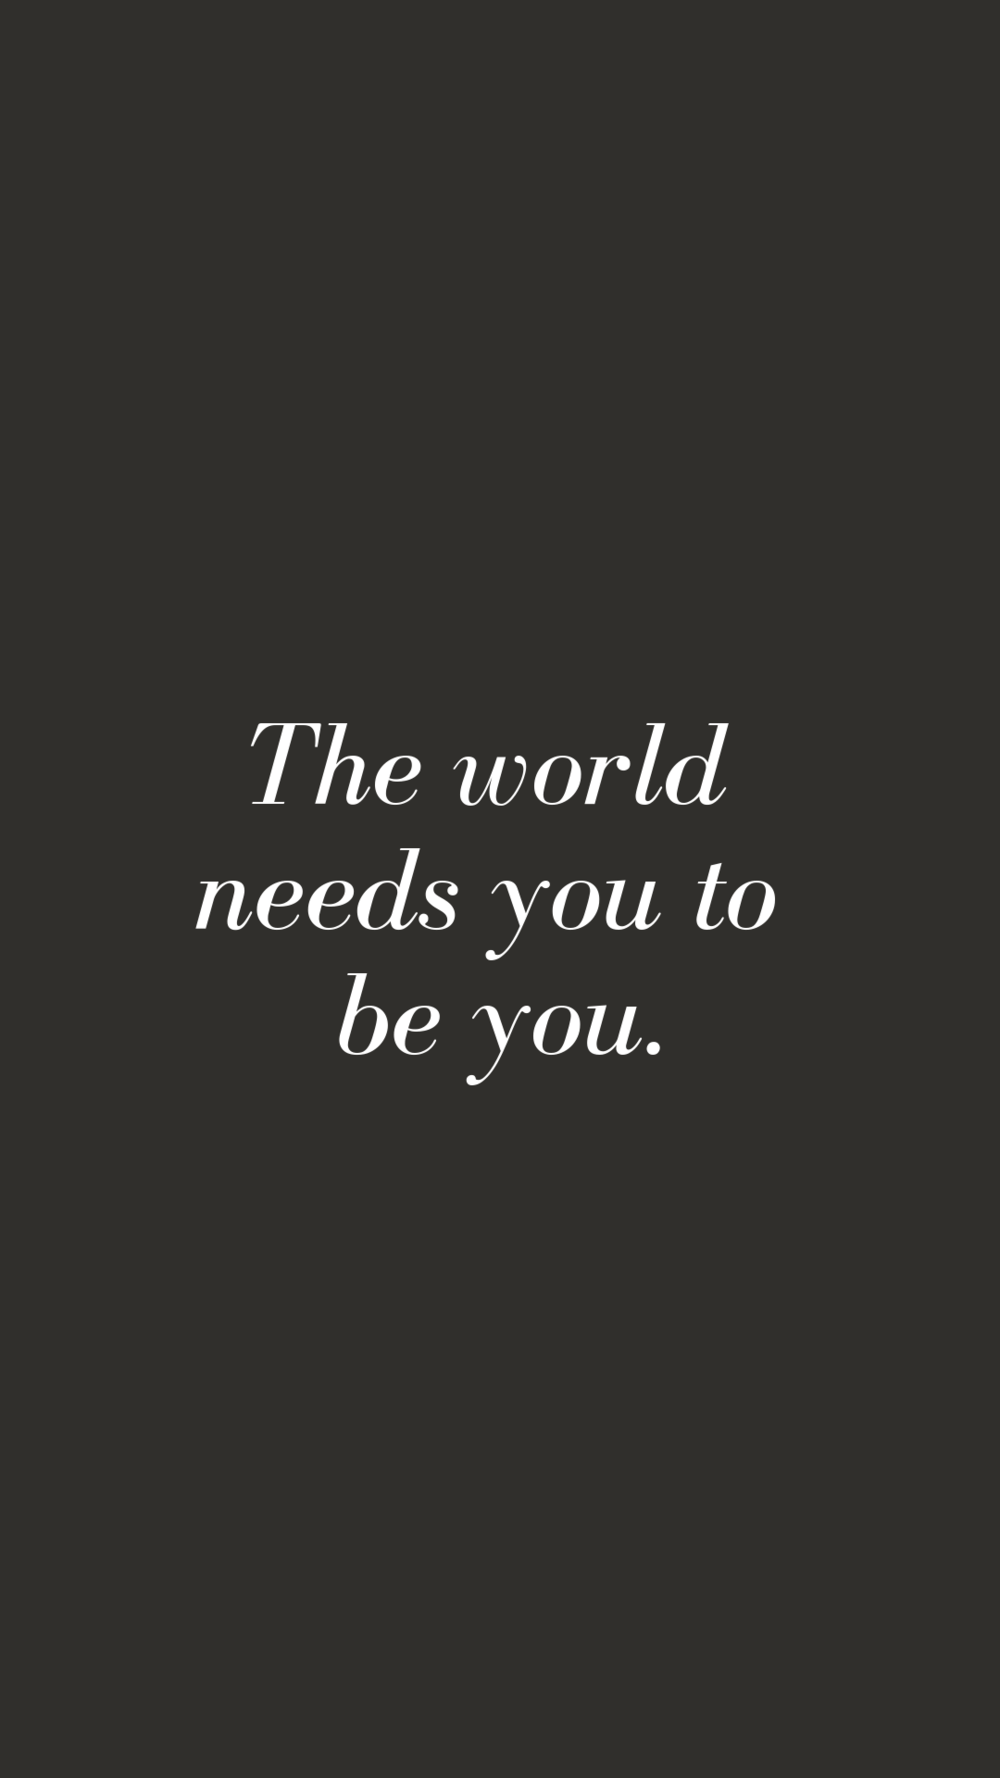 The world needs you to be you | Empowering Quotes for Your Phone Screen Background | Miranda Schroeder Blog | www.mirandaschroeder.com